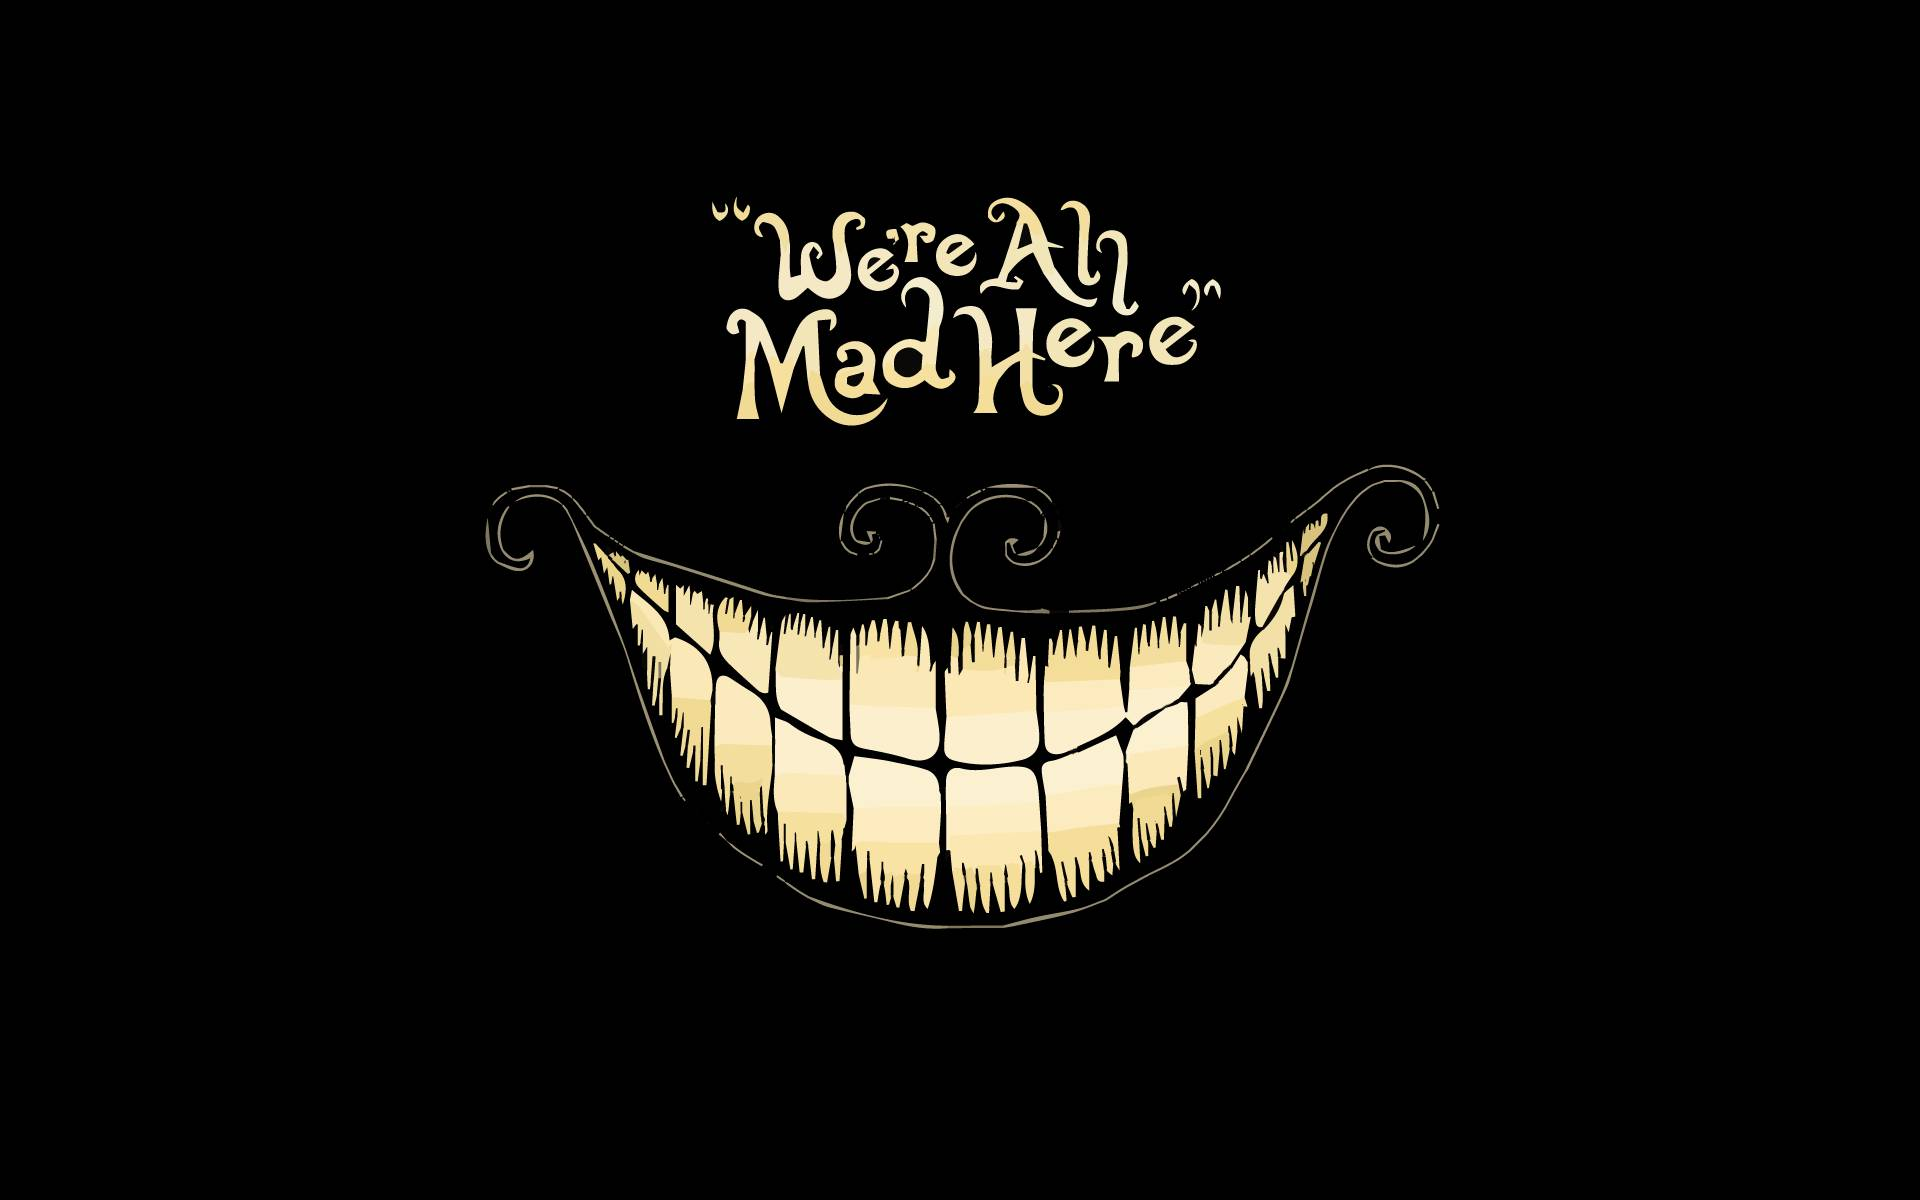 Cheshire Cat A Cheshire Cat wallpaper with a quote The Cheshire Cat 1920x1200